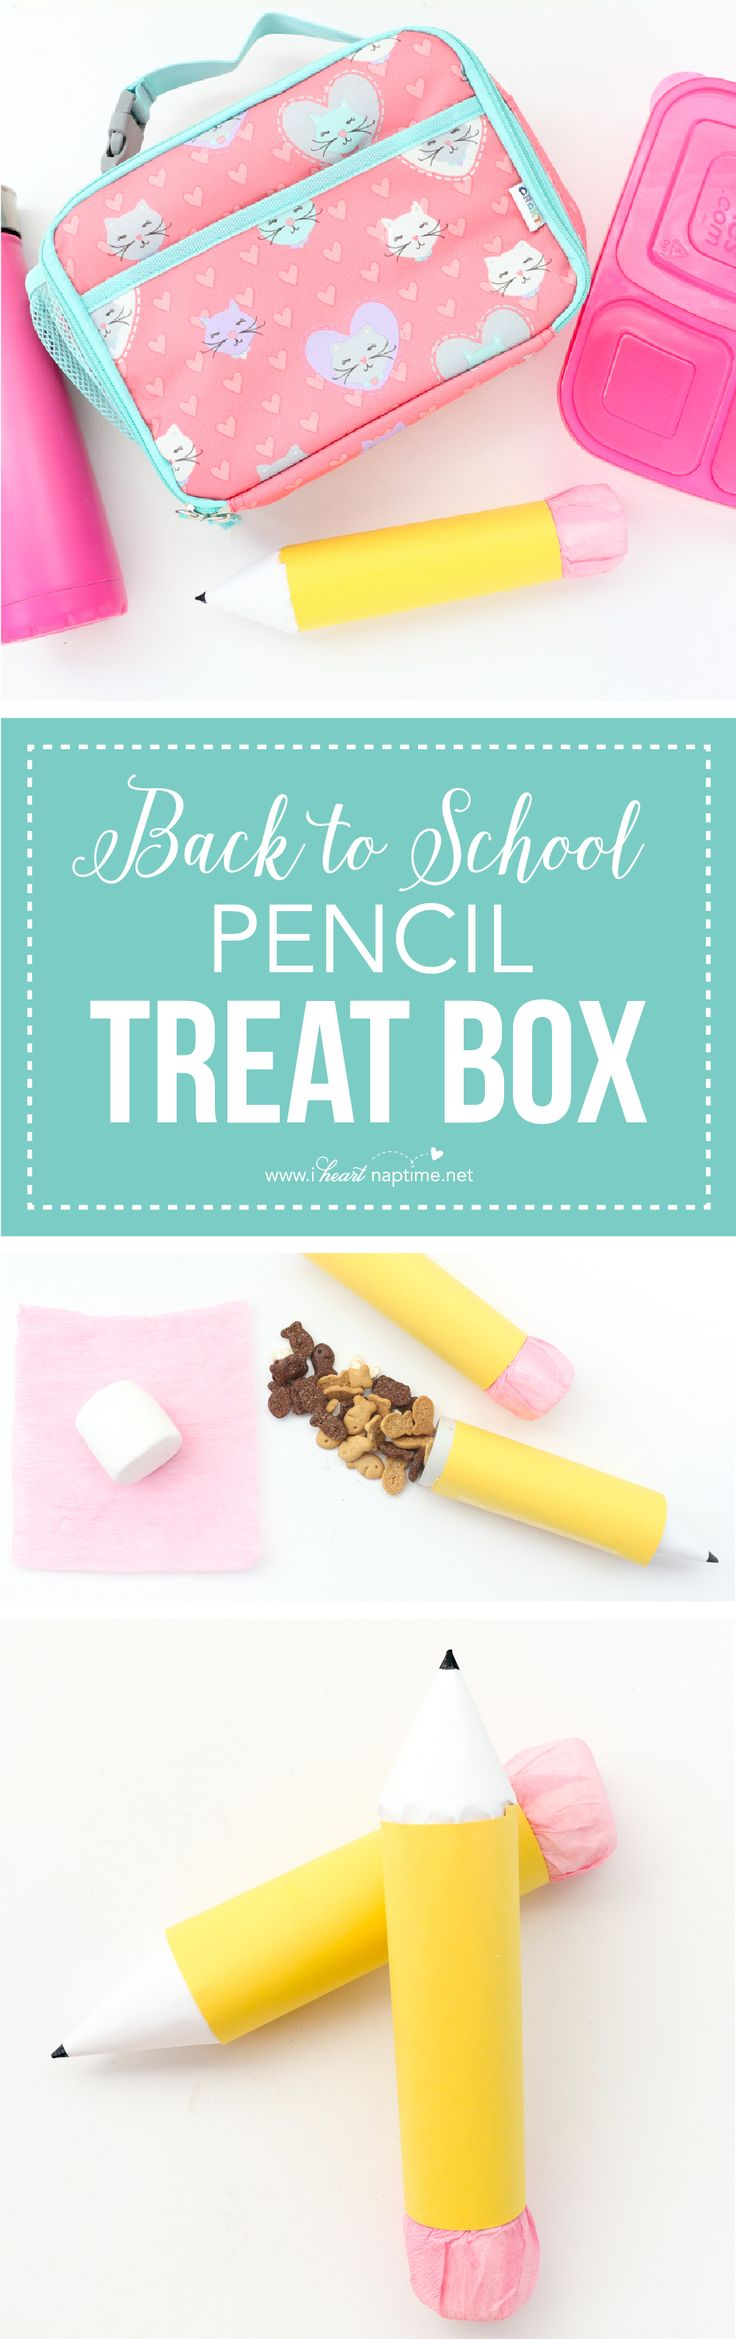 Back to school pencil treat boxes ...send a special treat to school in these fun DIY pencil boxes.